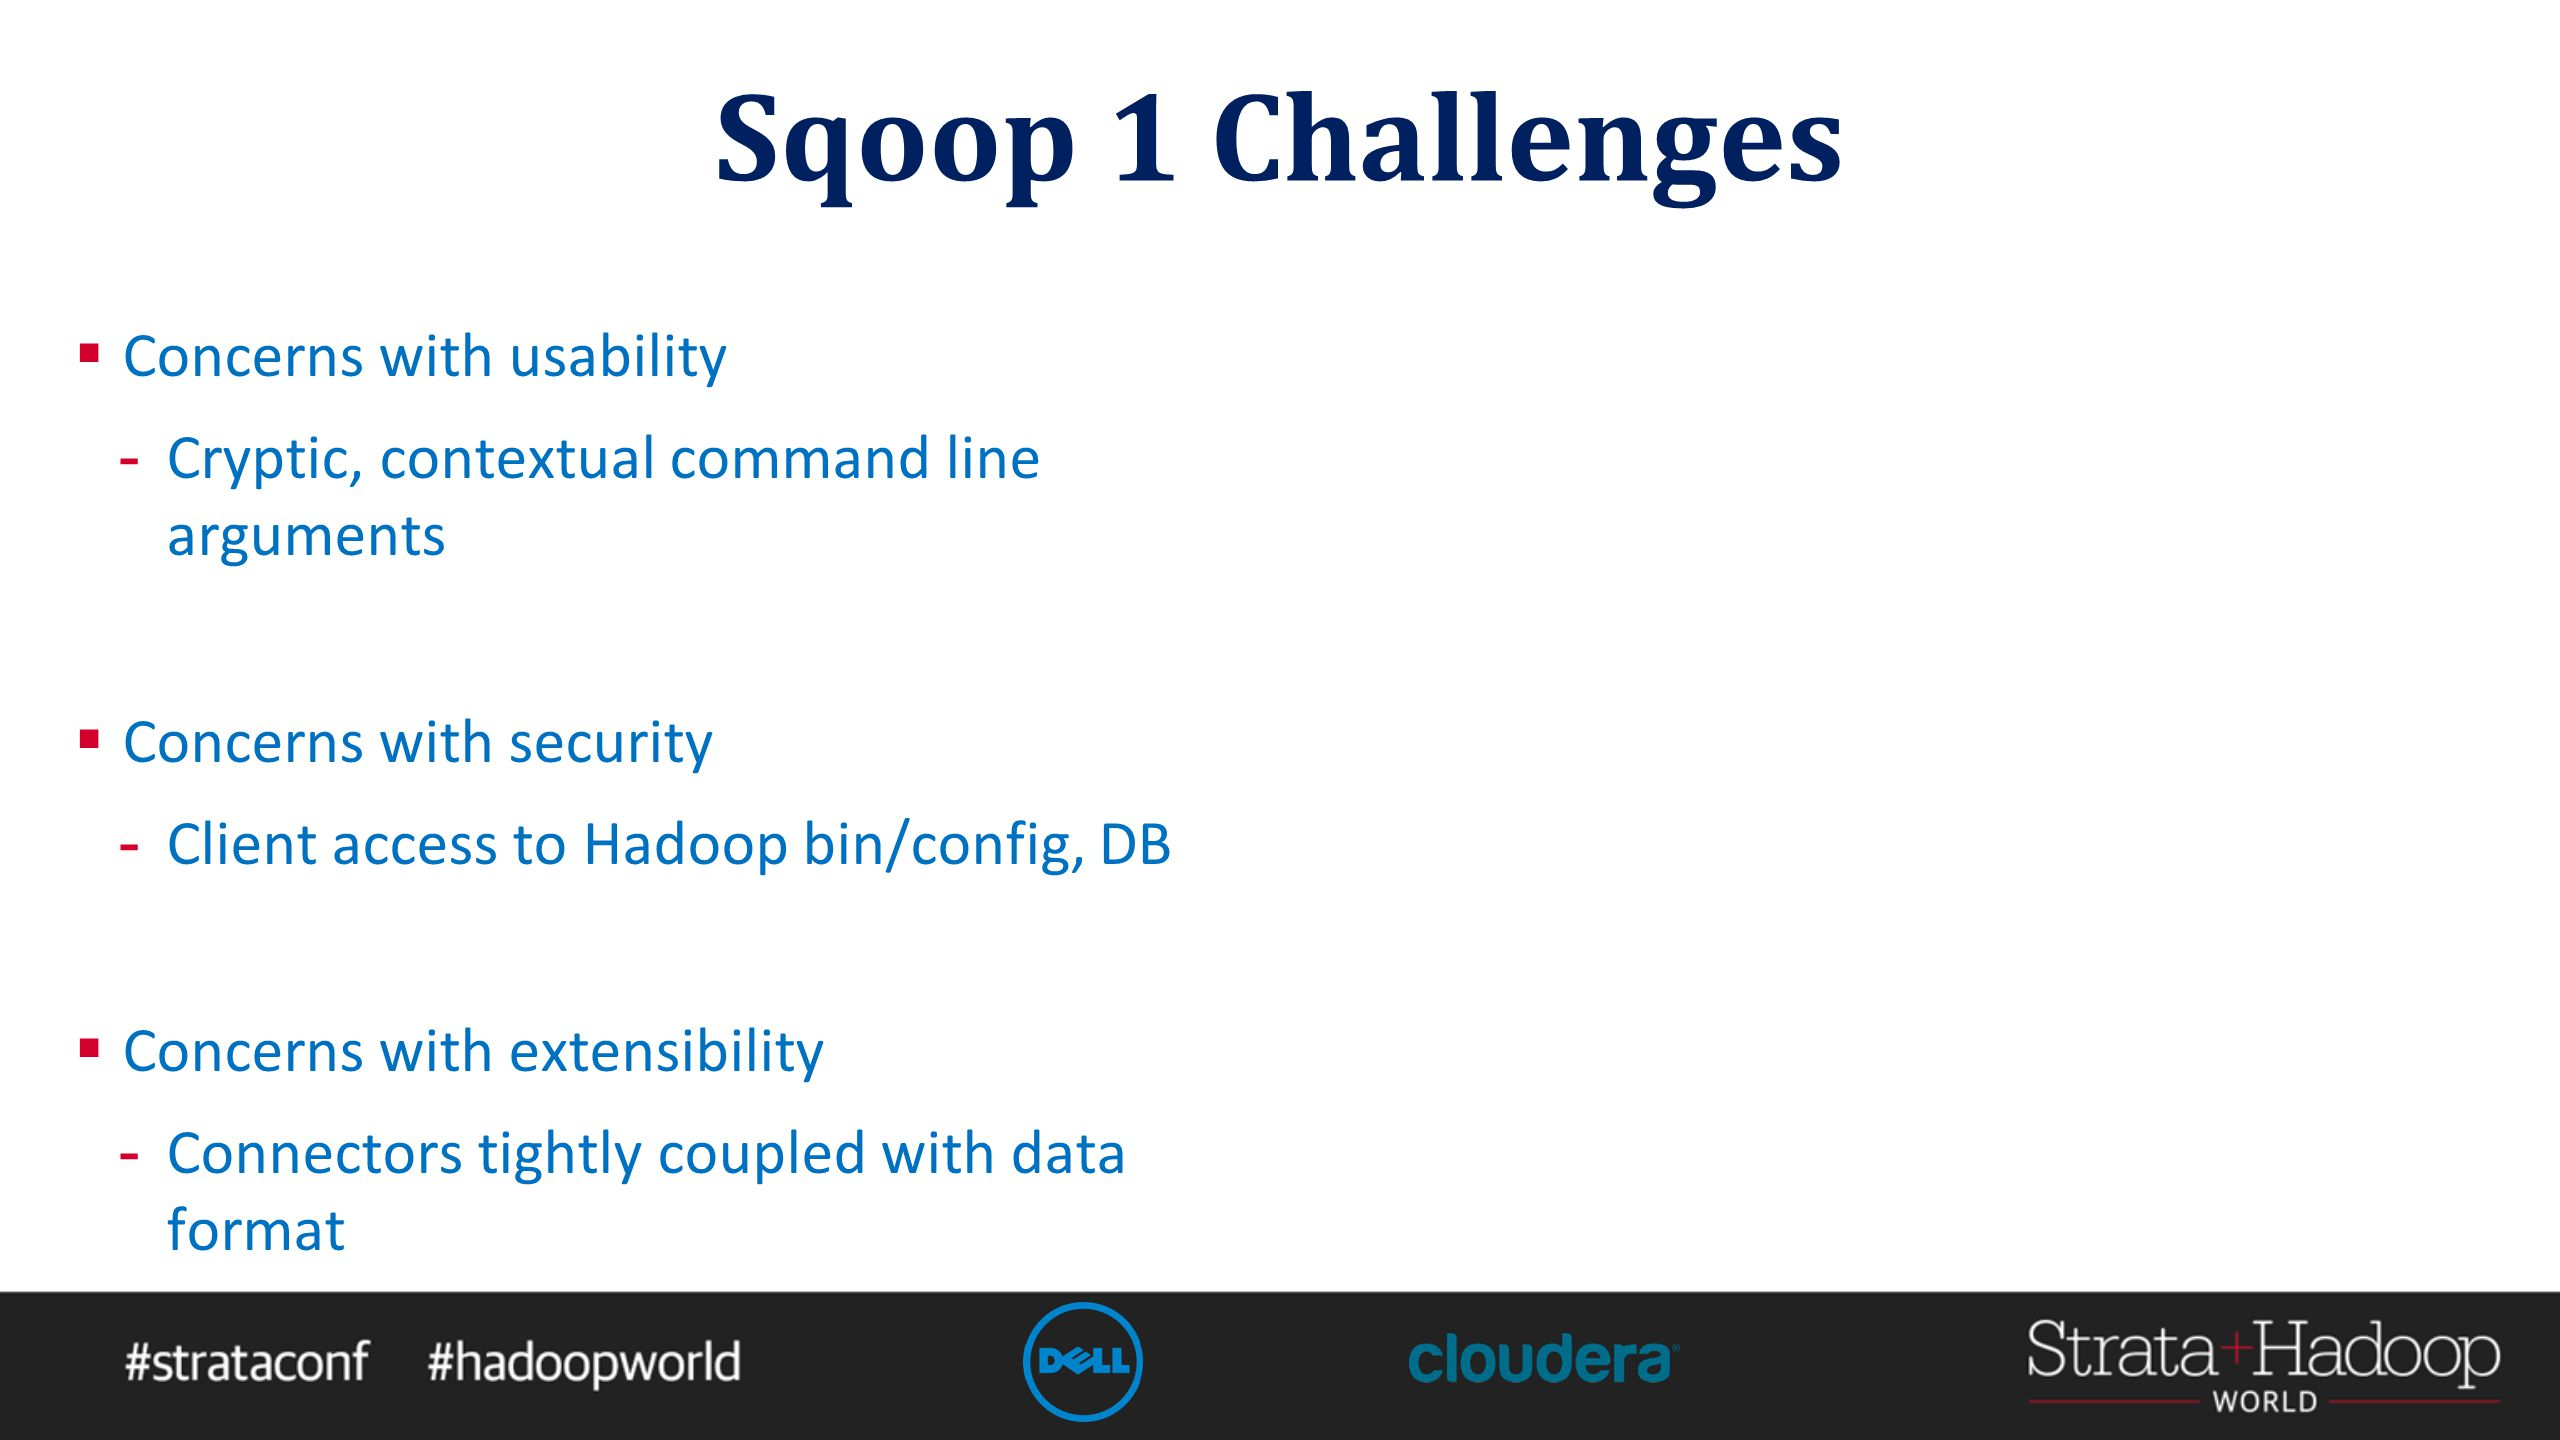 Sqoop 1 Challenges  Concerns with usability - Cryptic, contextual command line arguments  Concerns with security - Client access to Hadoop bin/config, DB  Concerns with extensibility - Connectors tightly coupled with data format